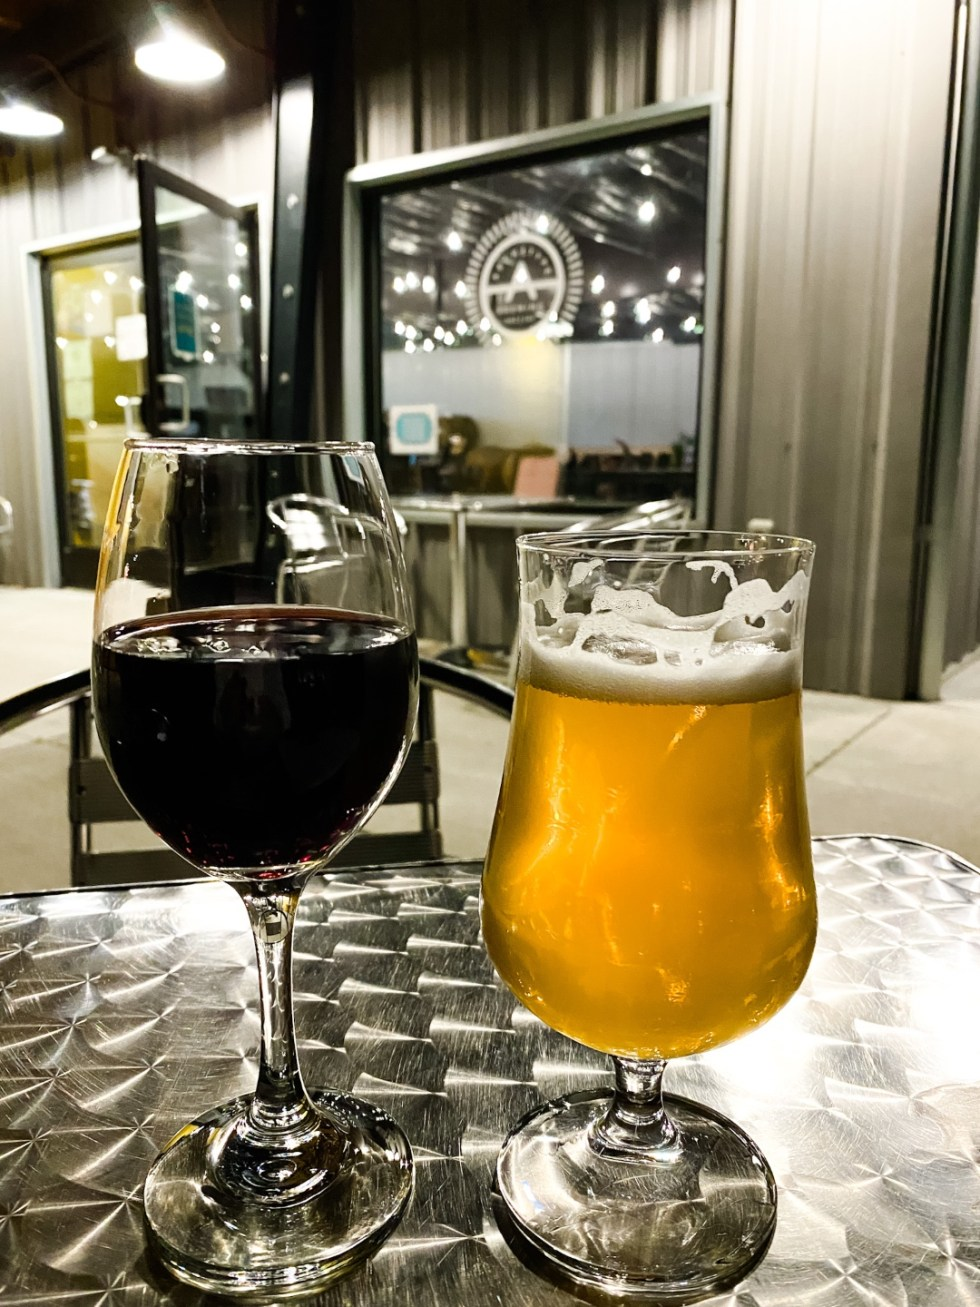 A Casual Weekend in Asheville: the Best Things to Do with your Dogs - I'm Fixin' To - @mbg0112   Weekend In Asheville by popular NC travel blog, I'm Fixin' To: image of a glass of beer and a glass of wine.